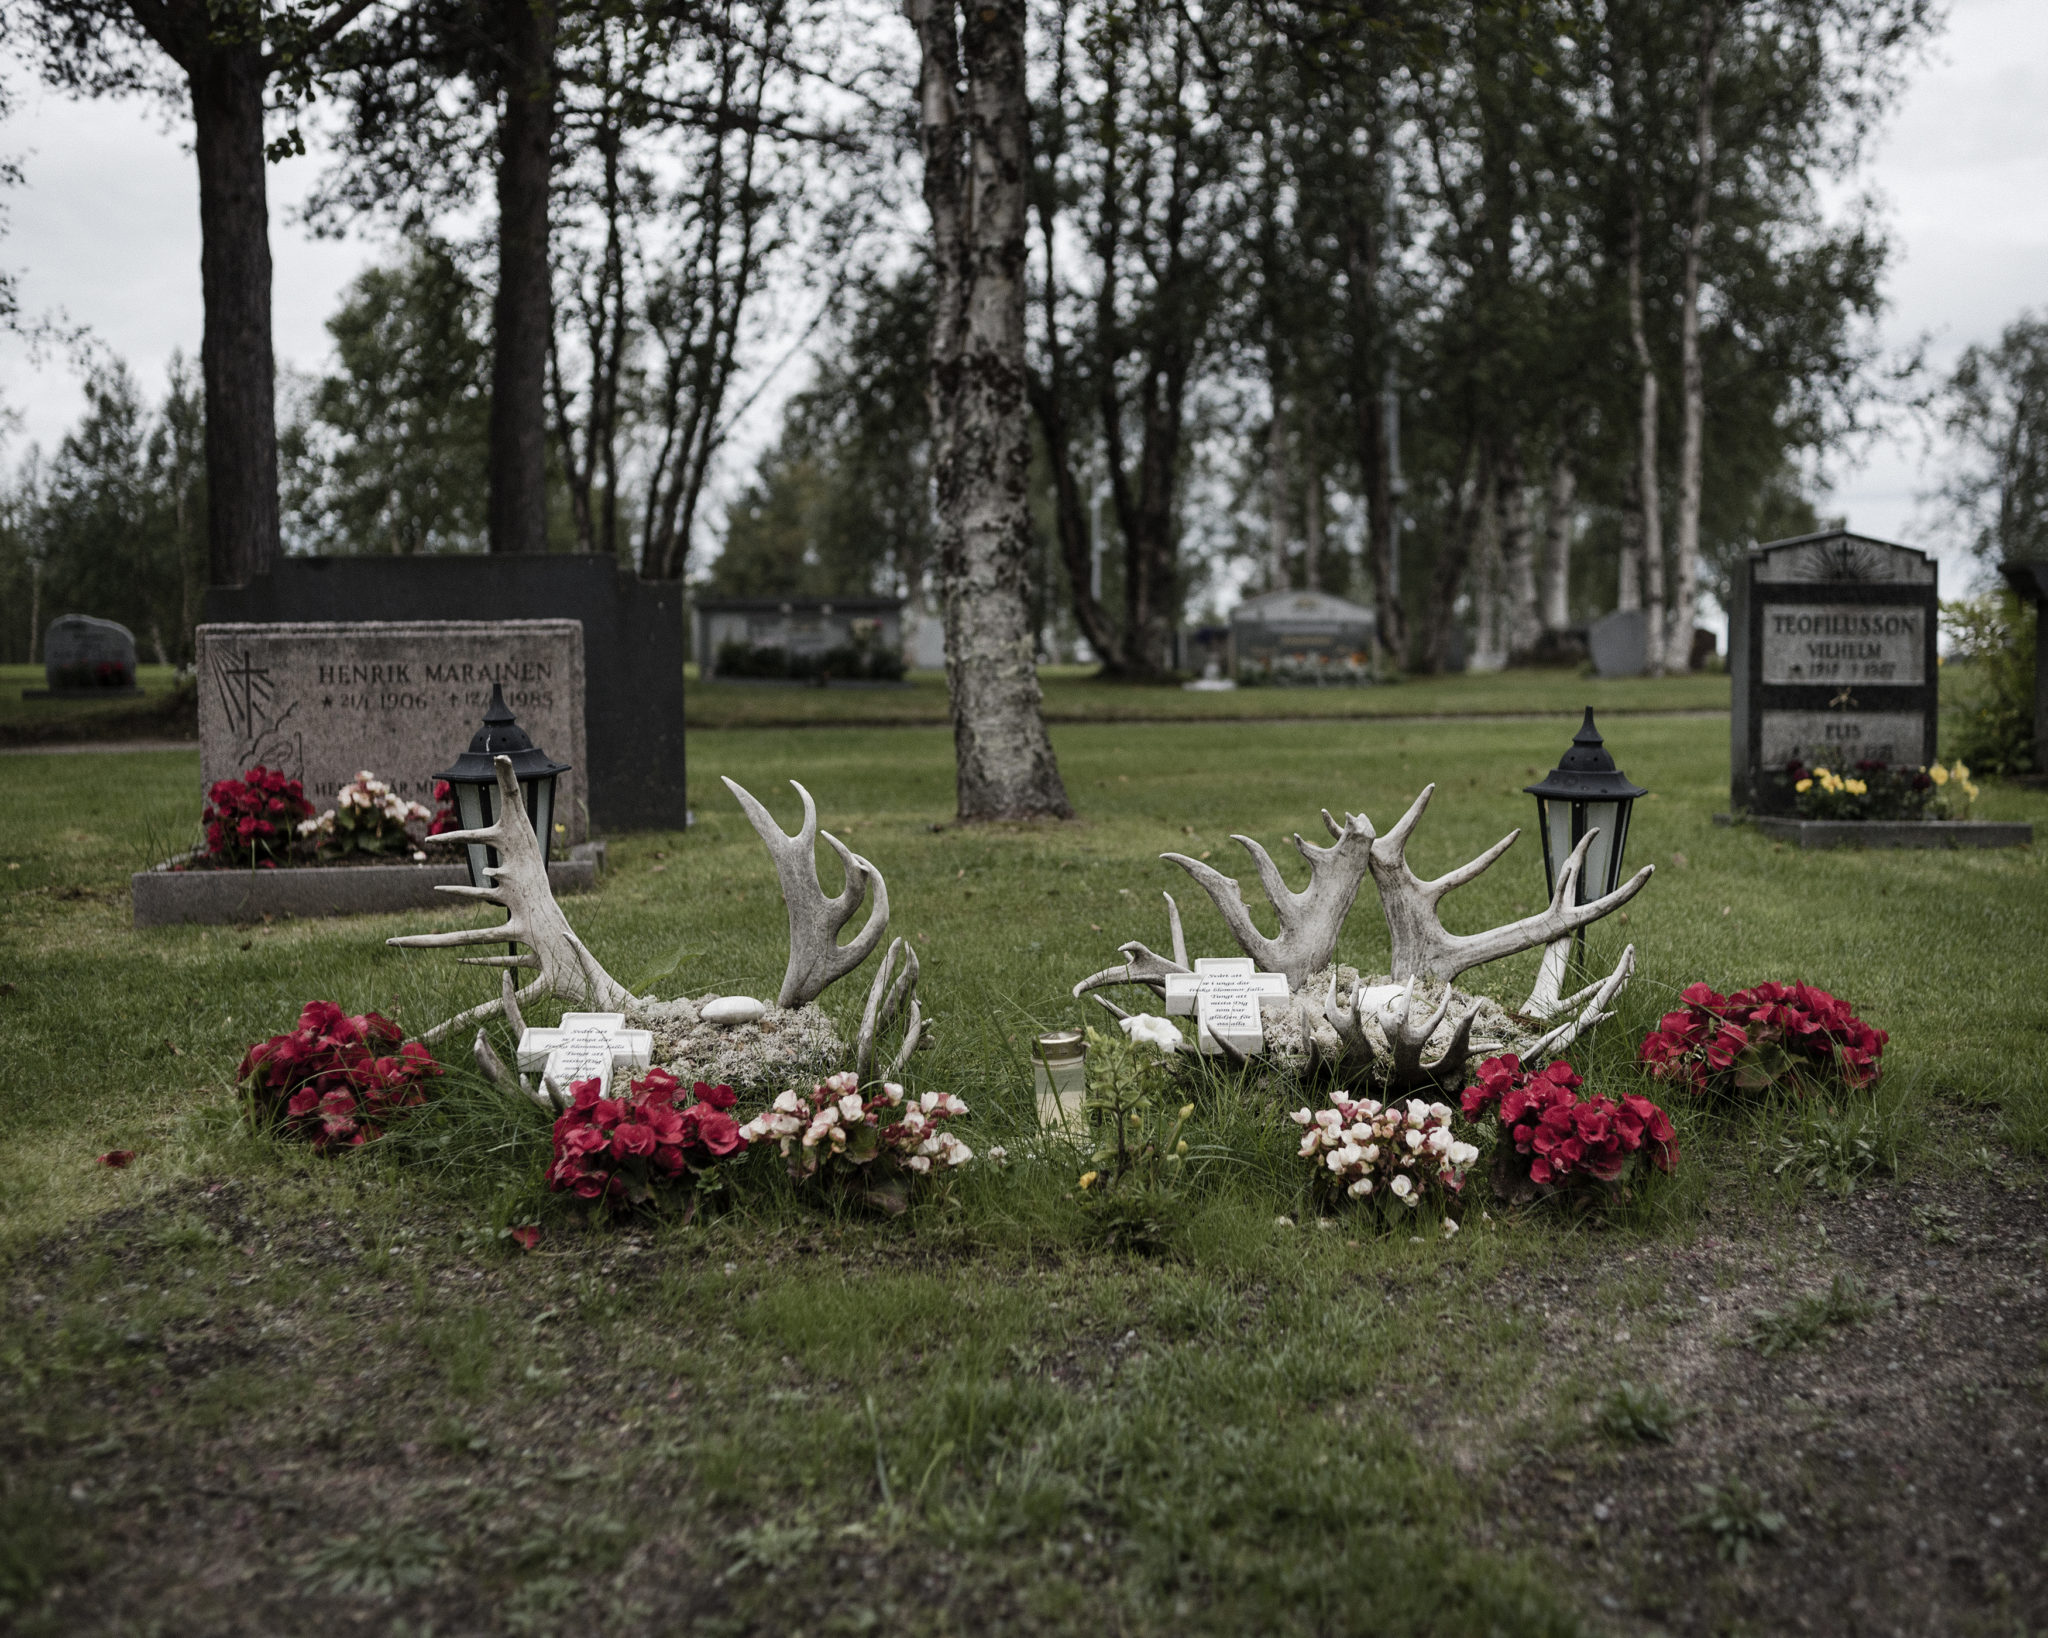 The graves of Gustu and Heaika Marainen are decorated with flowers and antlers. The two young men, both indigenous reindeer herders in Arctic Scandinavia, took their lives in a time when climate change is jeopardizing their way of life. Click on the photo to see the story. (Photo by Camilla Andersen/GroundTruth)